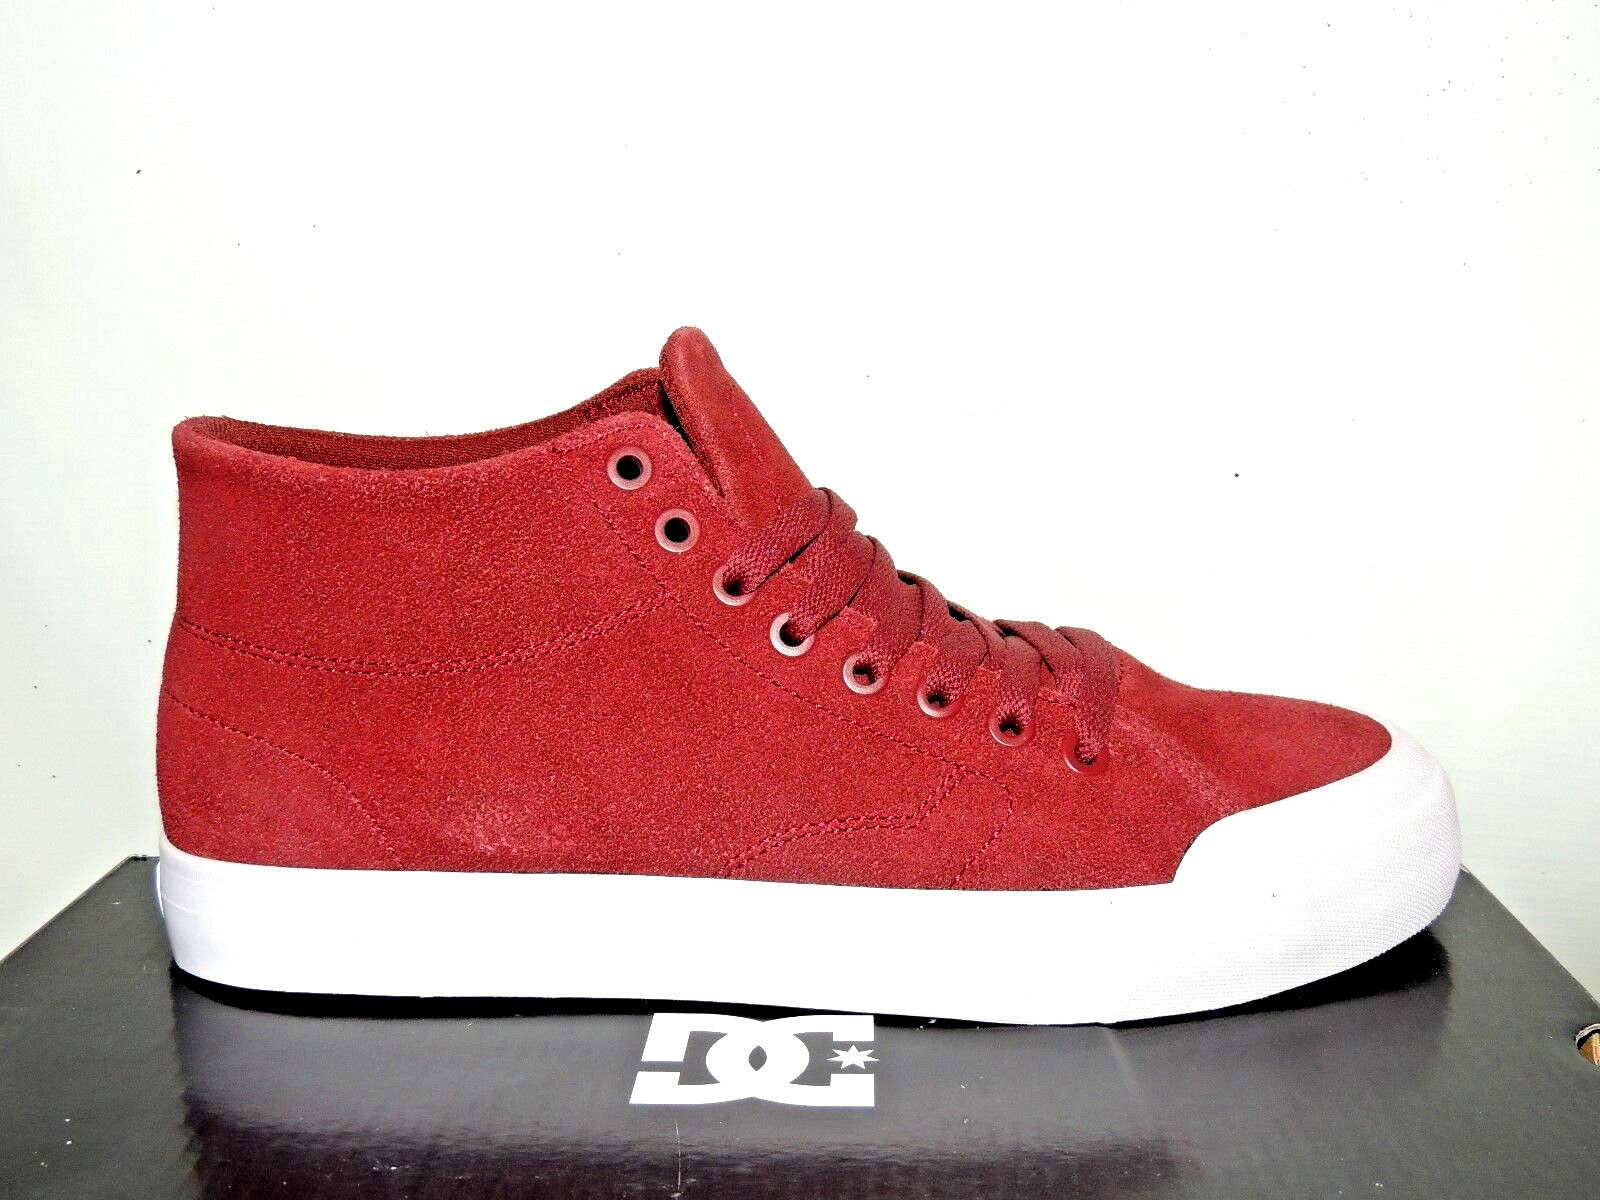 DC BURGUNDY EVAN SMITH HI ZERO BURGUNDY DC SUEDE TRAINERS. BNIB 9d149c